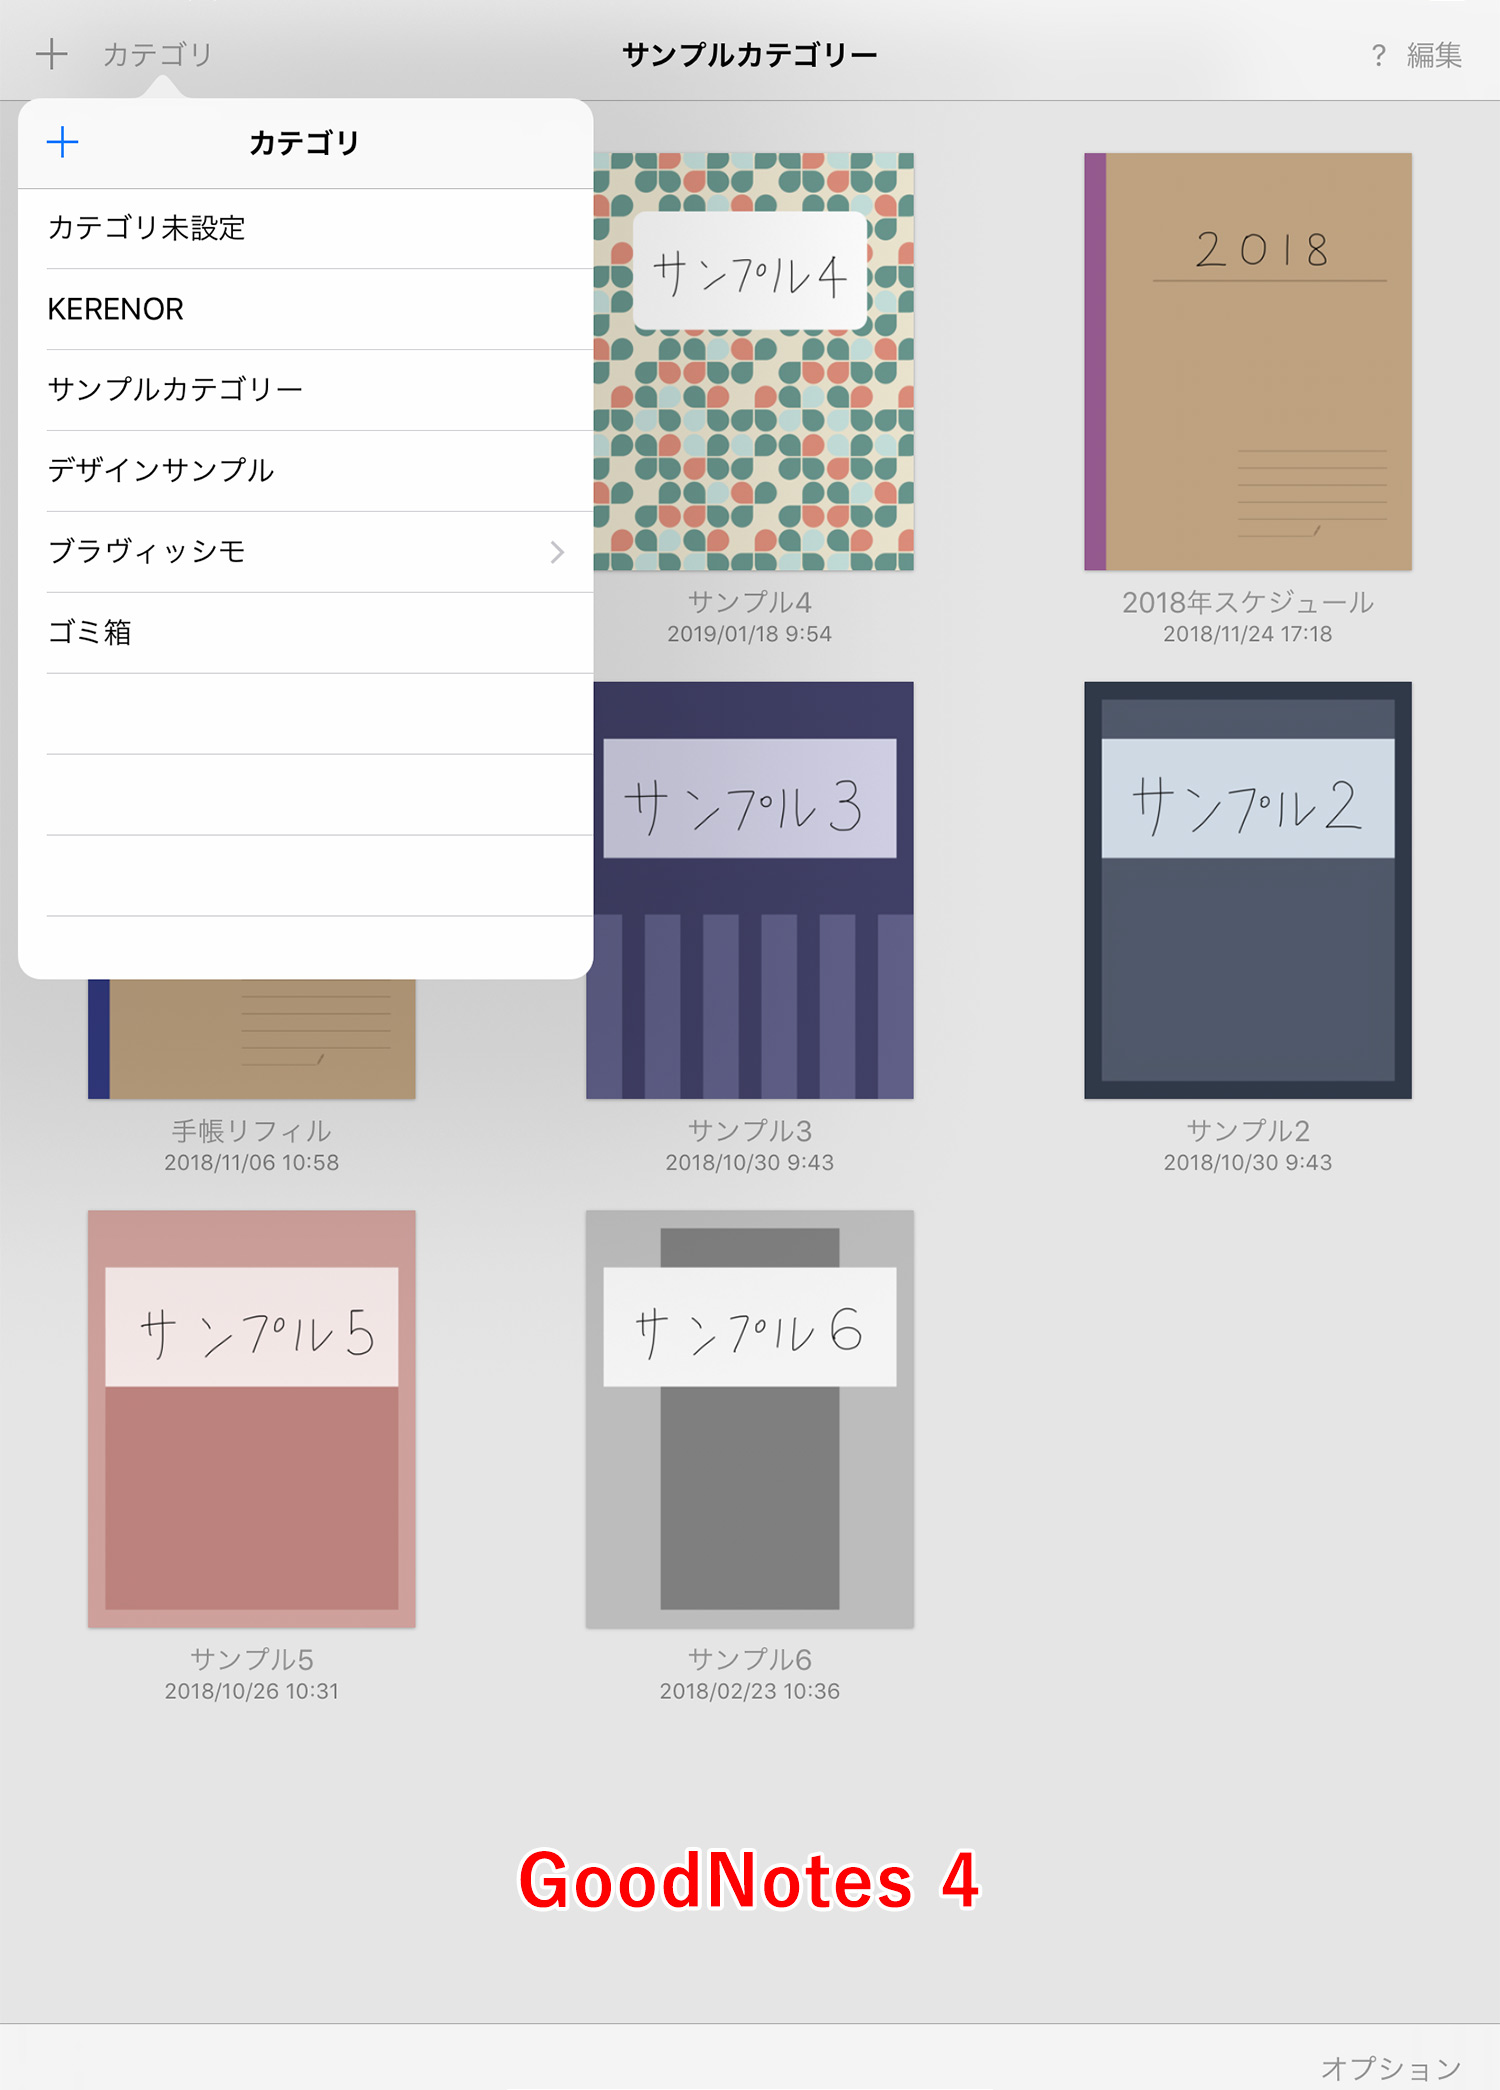 GoodNotes 4のノート一覧画面